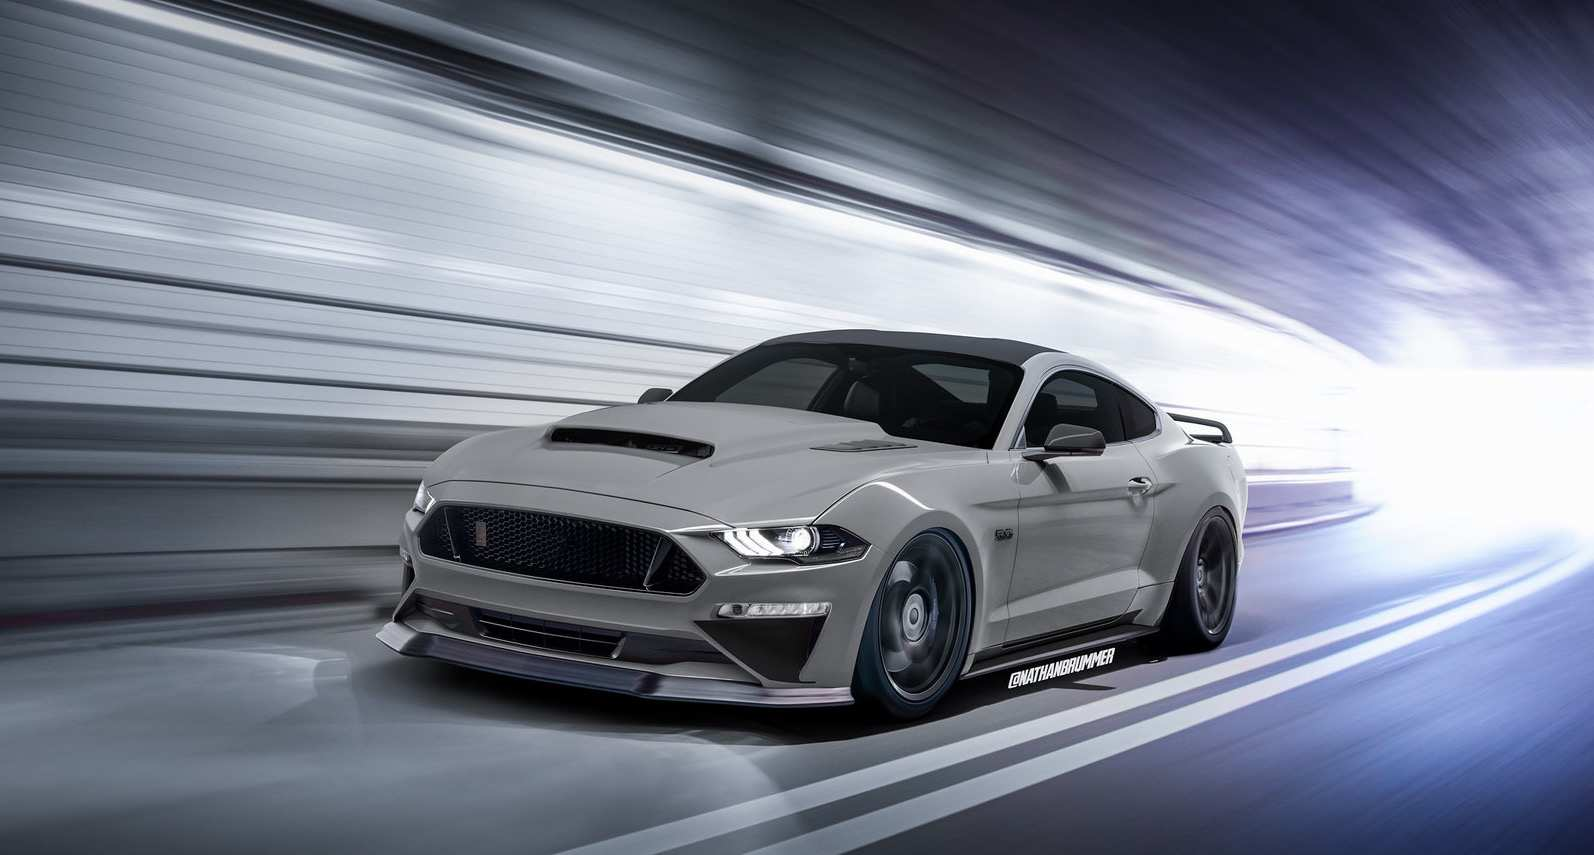 38 The Best 2019 Mustang Gt500 Overview